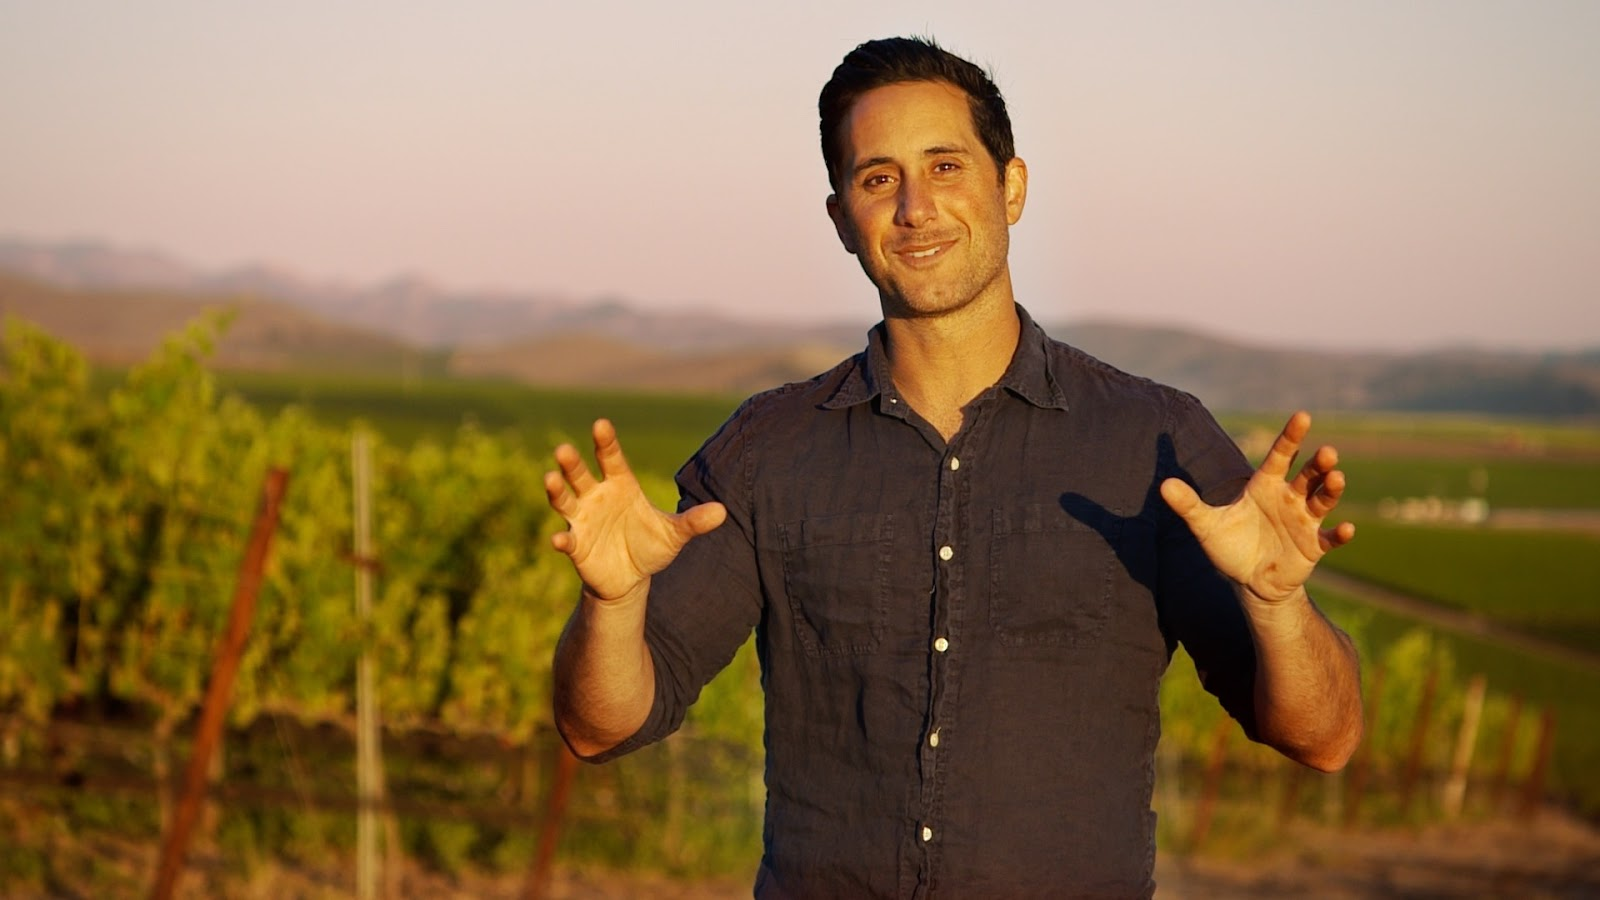 Brian McClintic on location at Bien Nacido Vineyards in the Santa Maria Valley